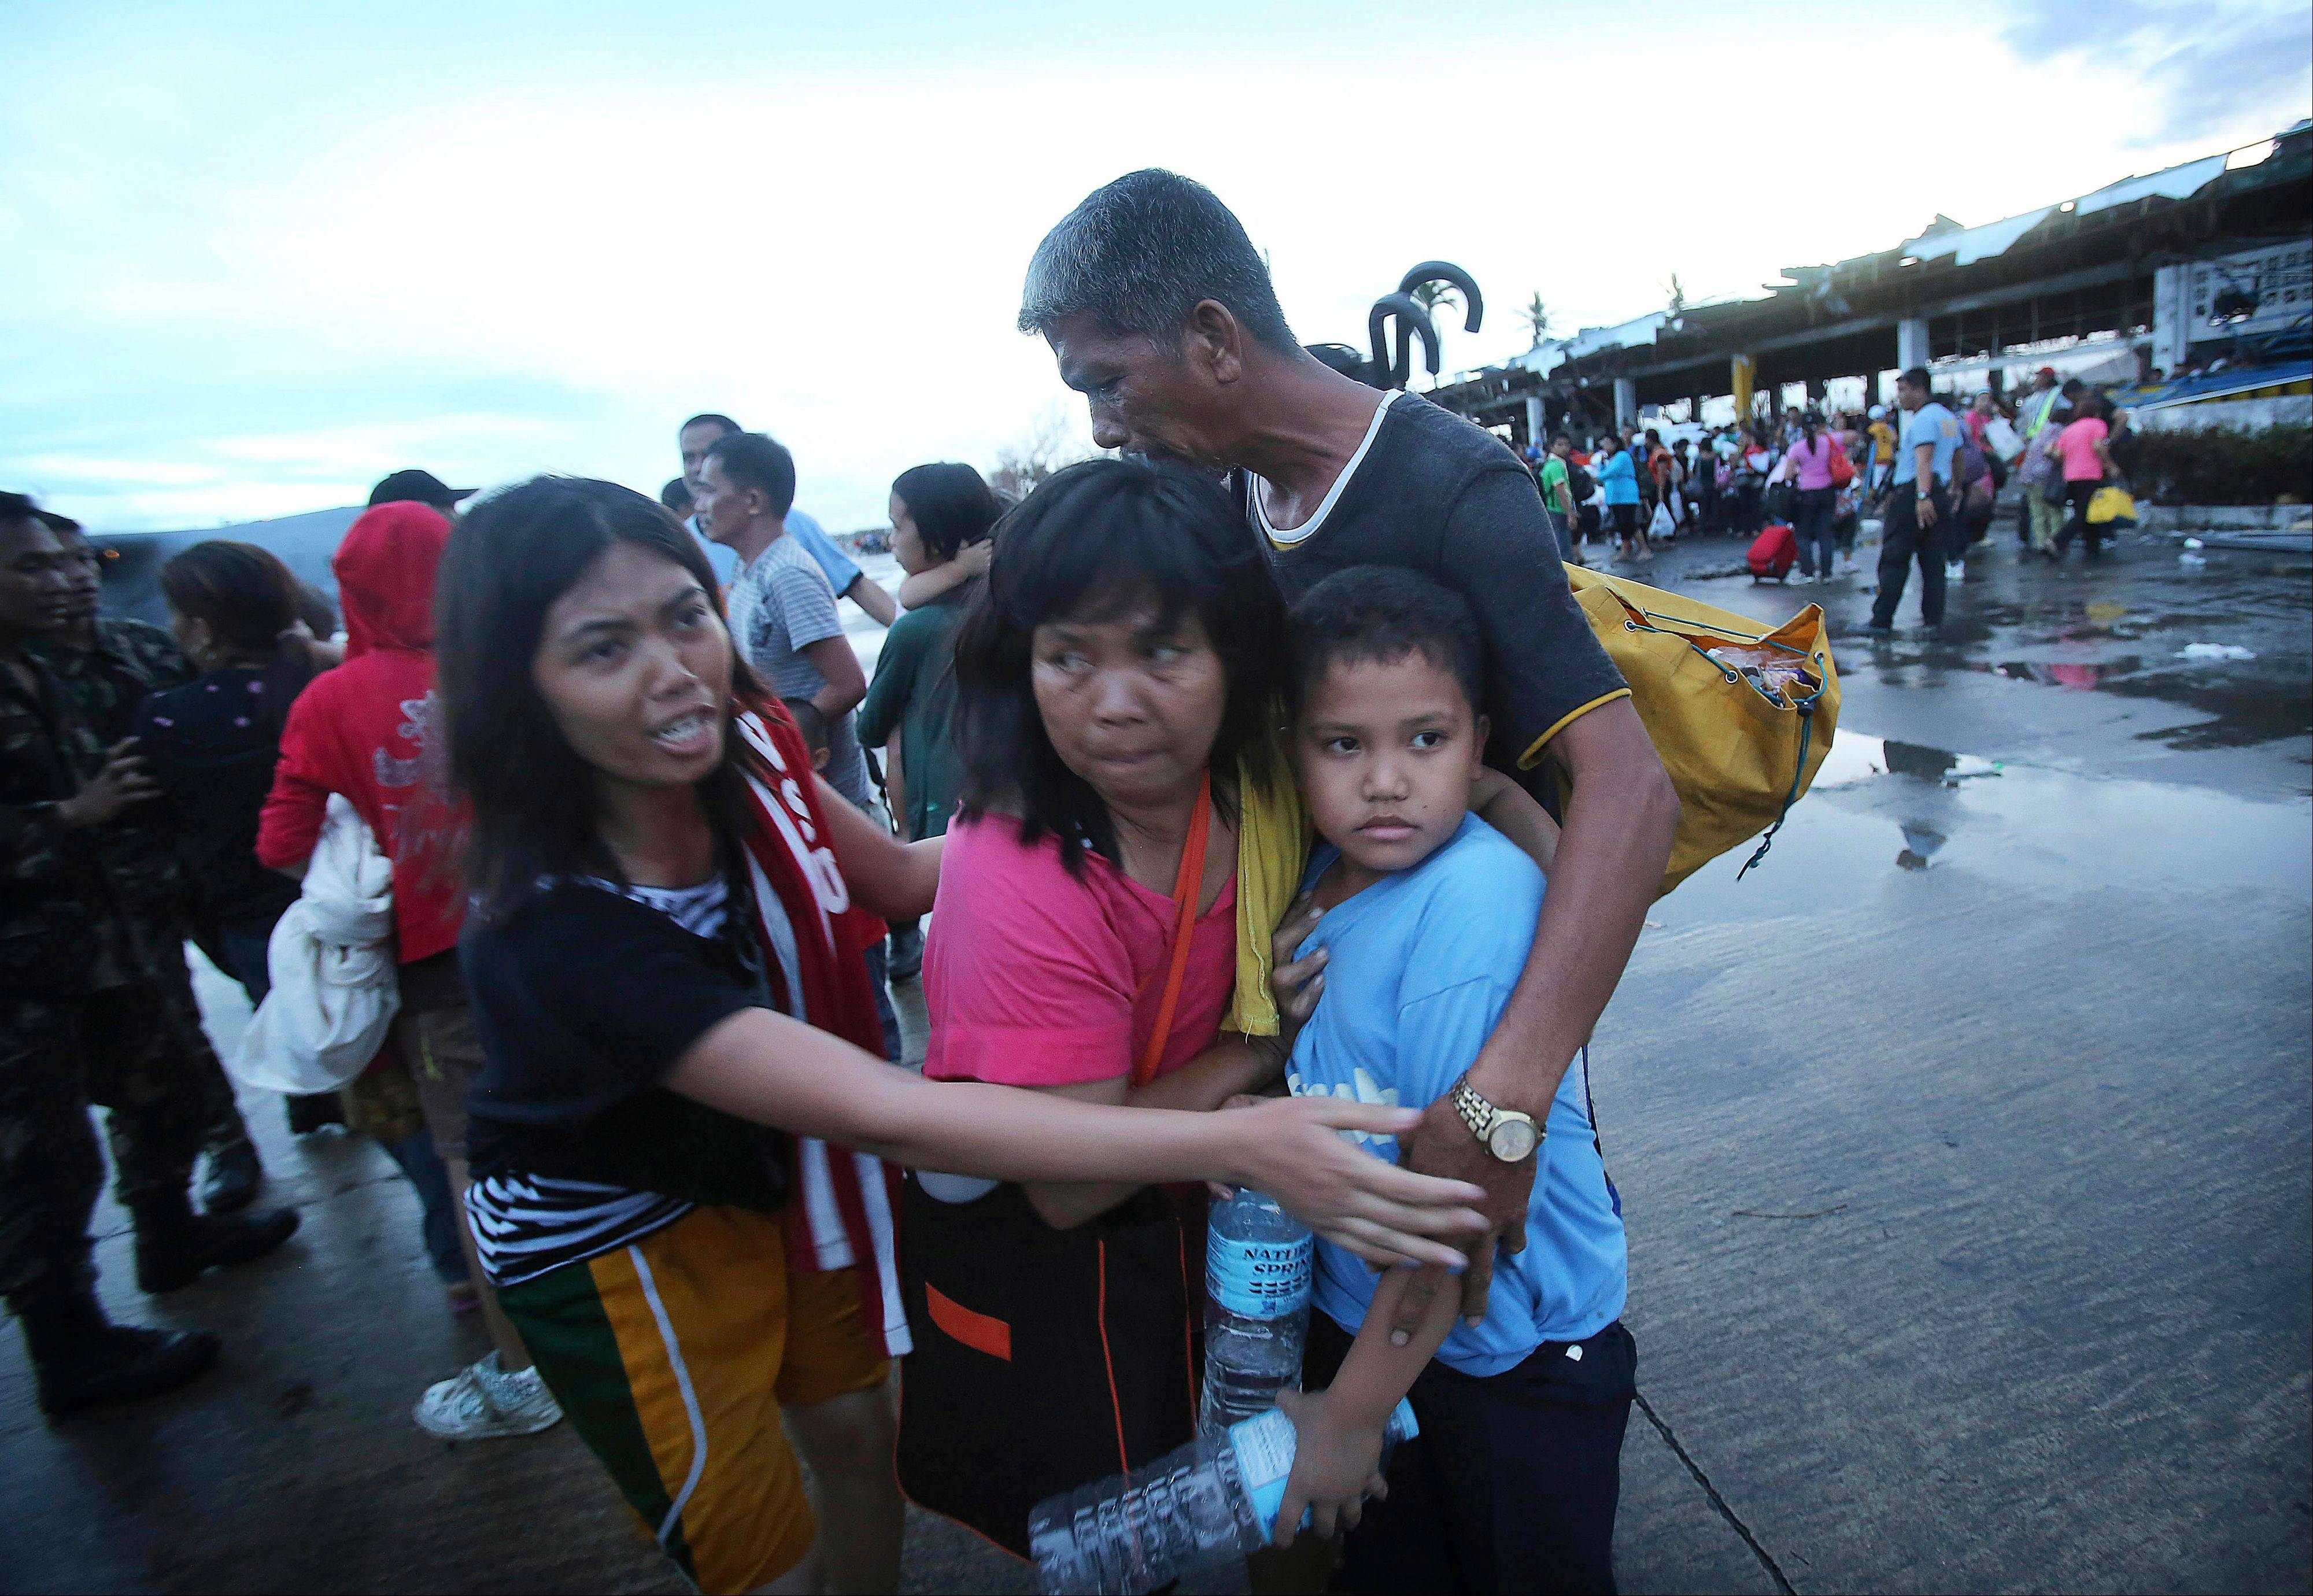 Survivors of Typhoon Haiyan comfort each other after not being allowed to board a C-130 cargo plane because of limited space Tuesday at the airport in Tacloban, central Philippines.